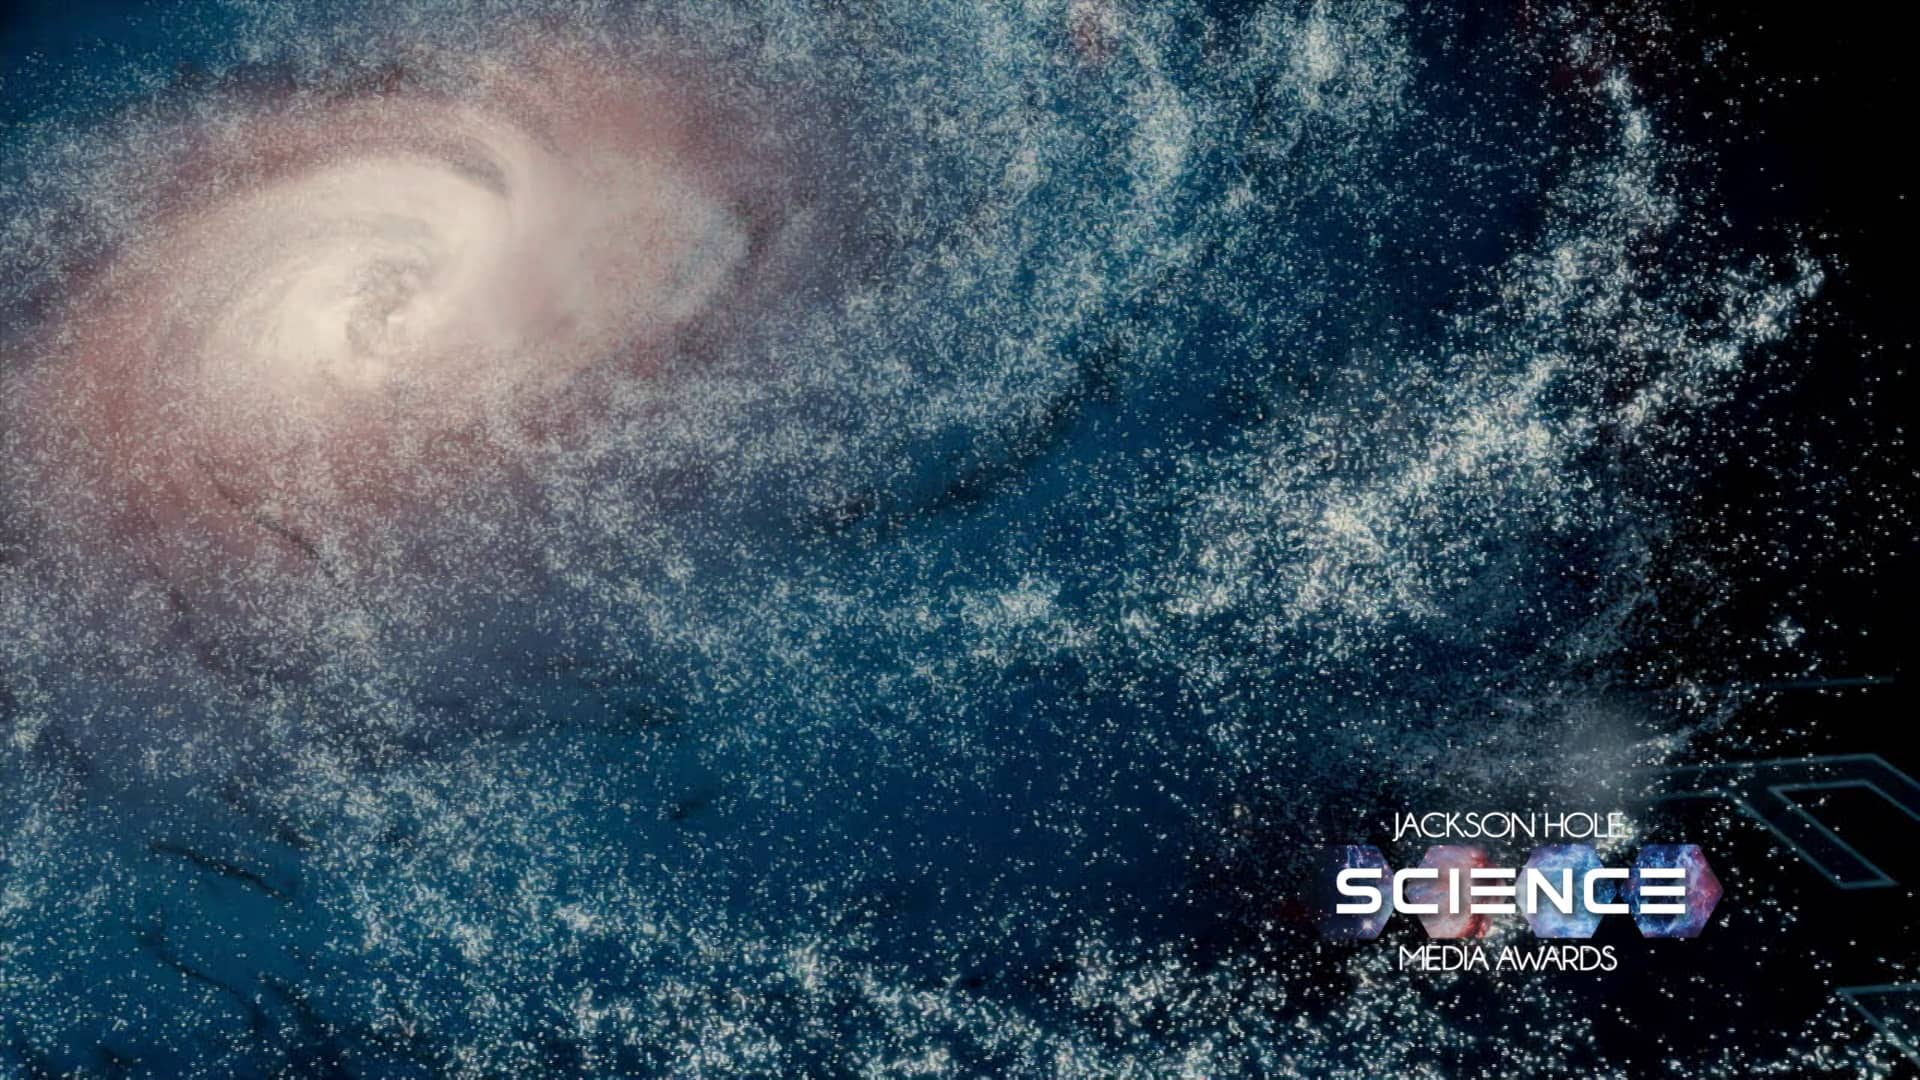 Cosmos: A Spacetime Odyssey wallpapers, TV Show, HQ Cosmos